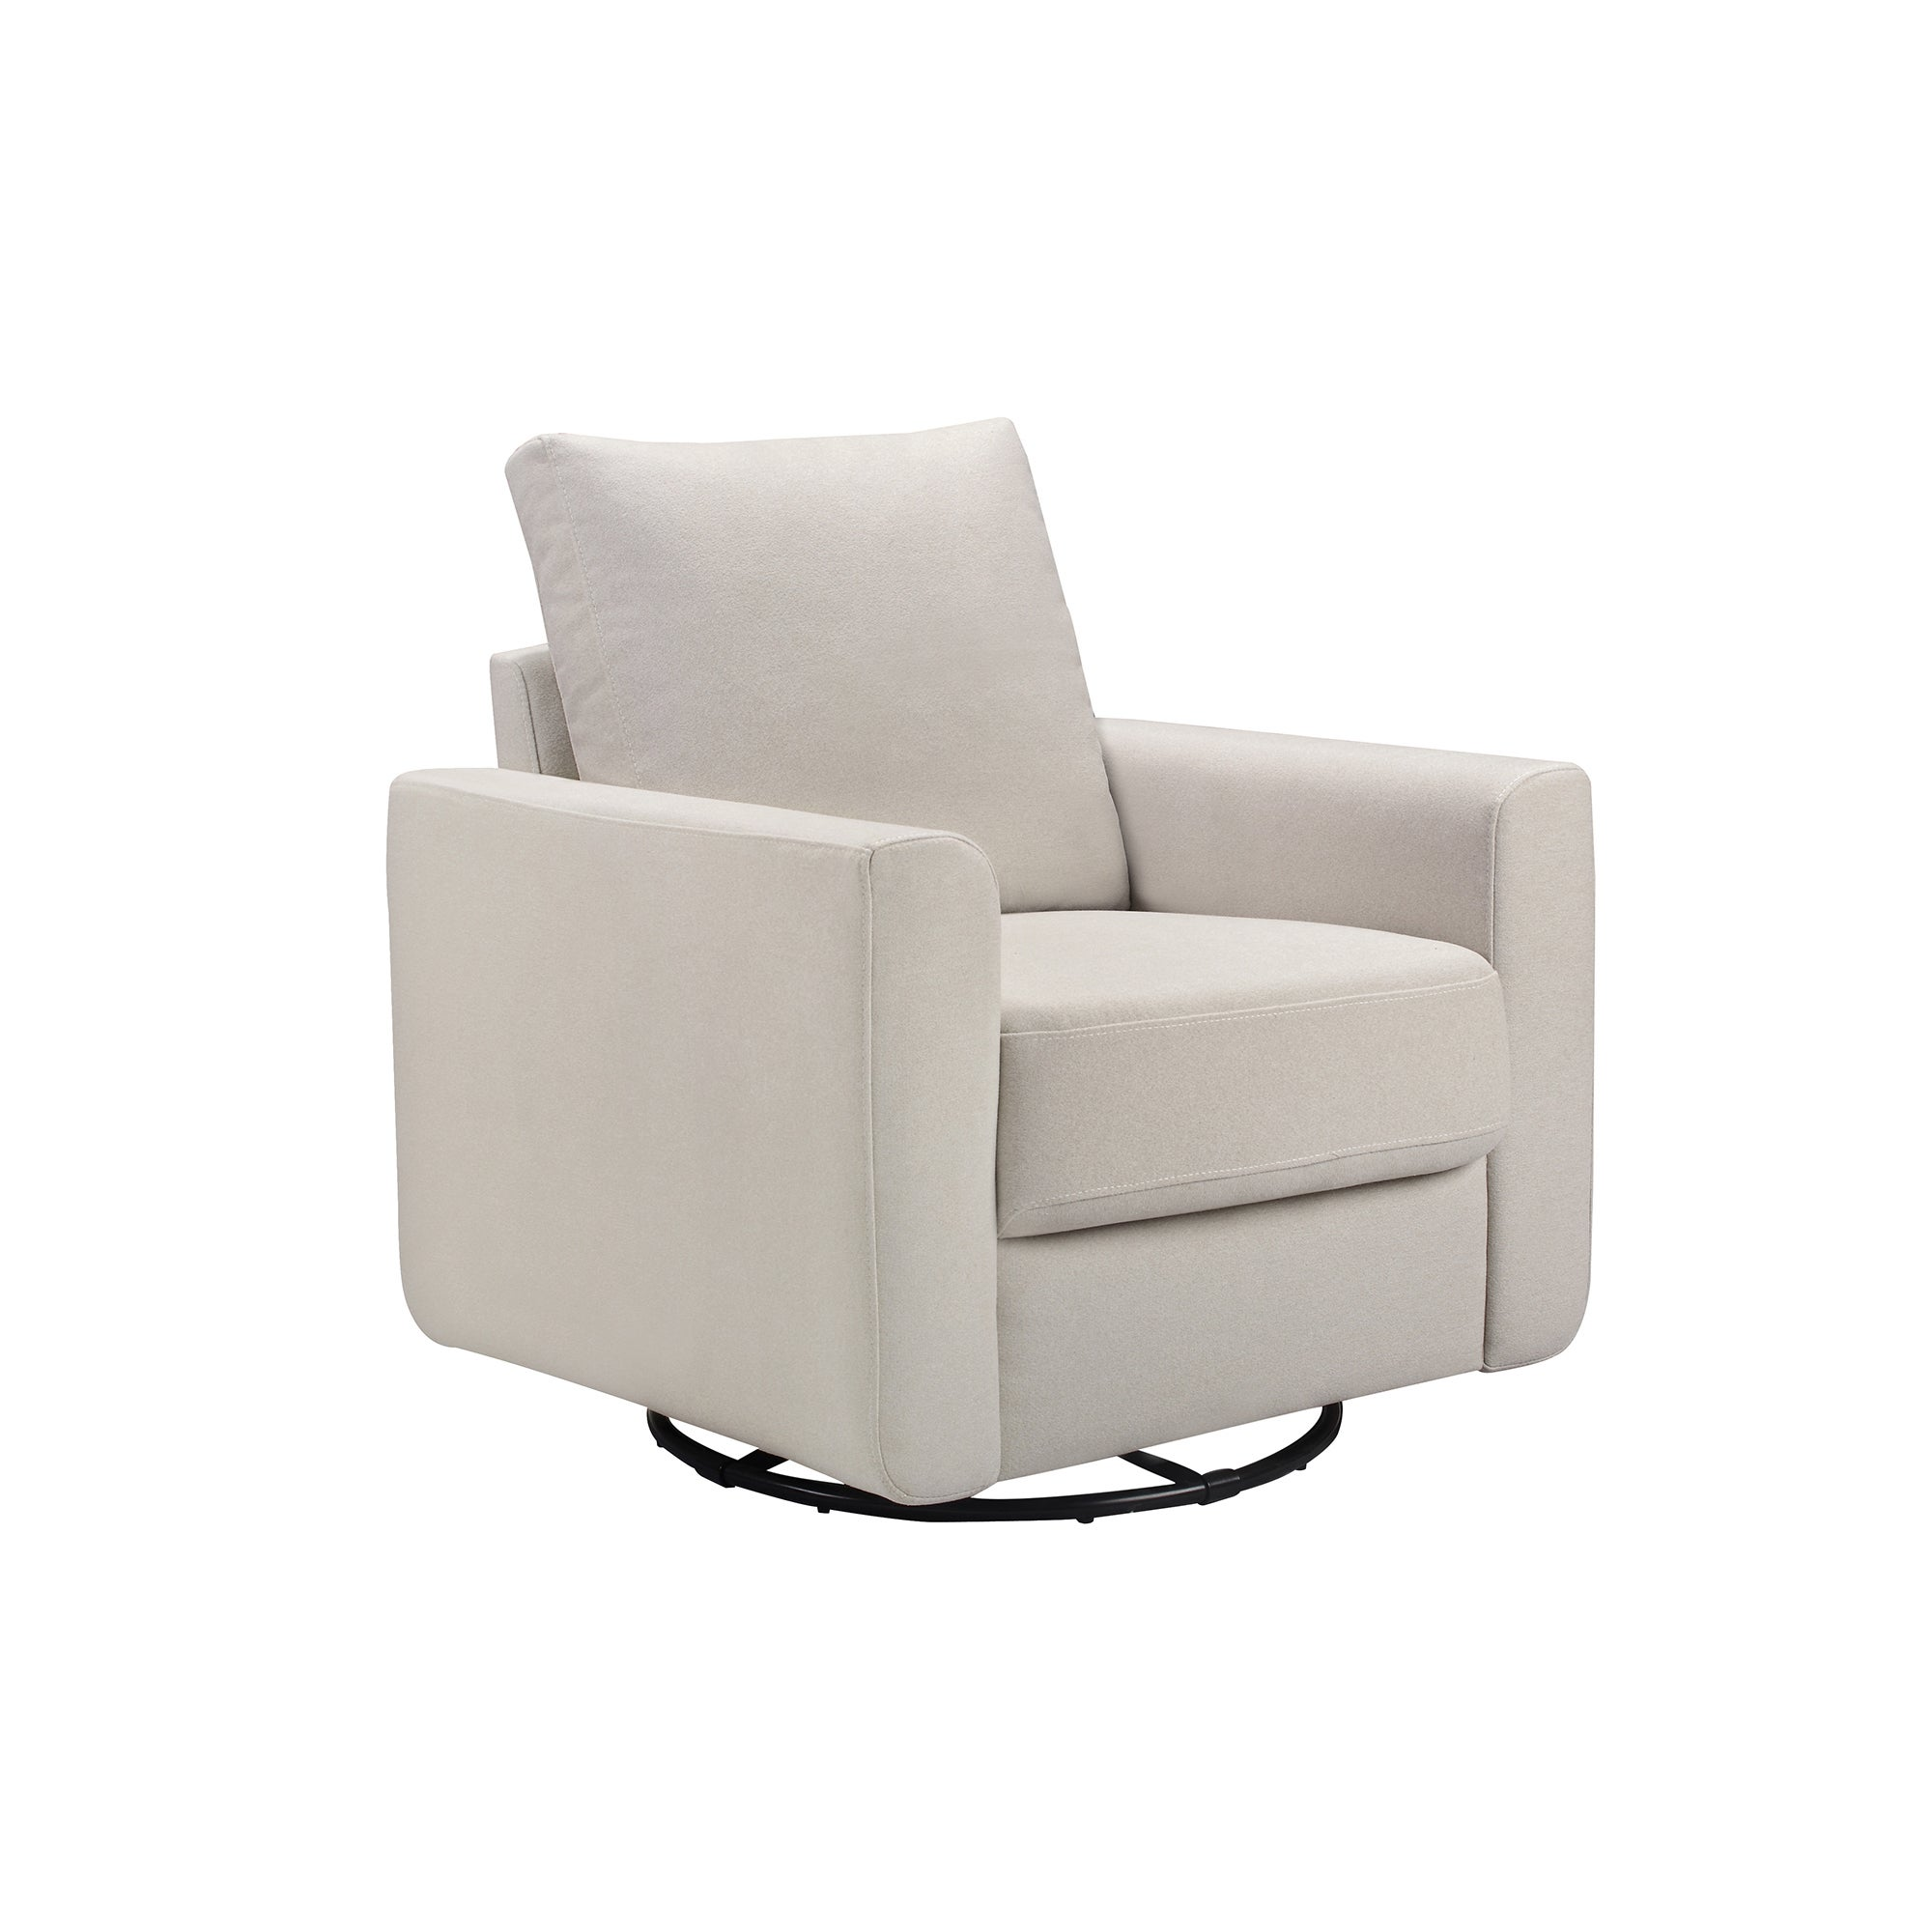 Babyletto Bento Swivel Glider   Free Shipping Today   Overstock   16453821